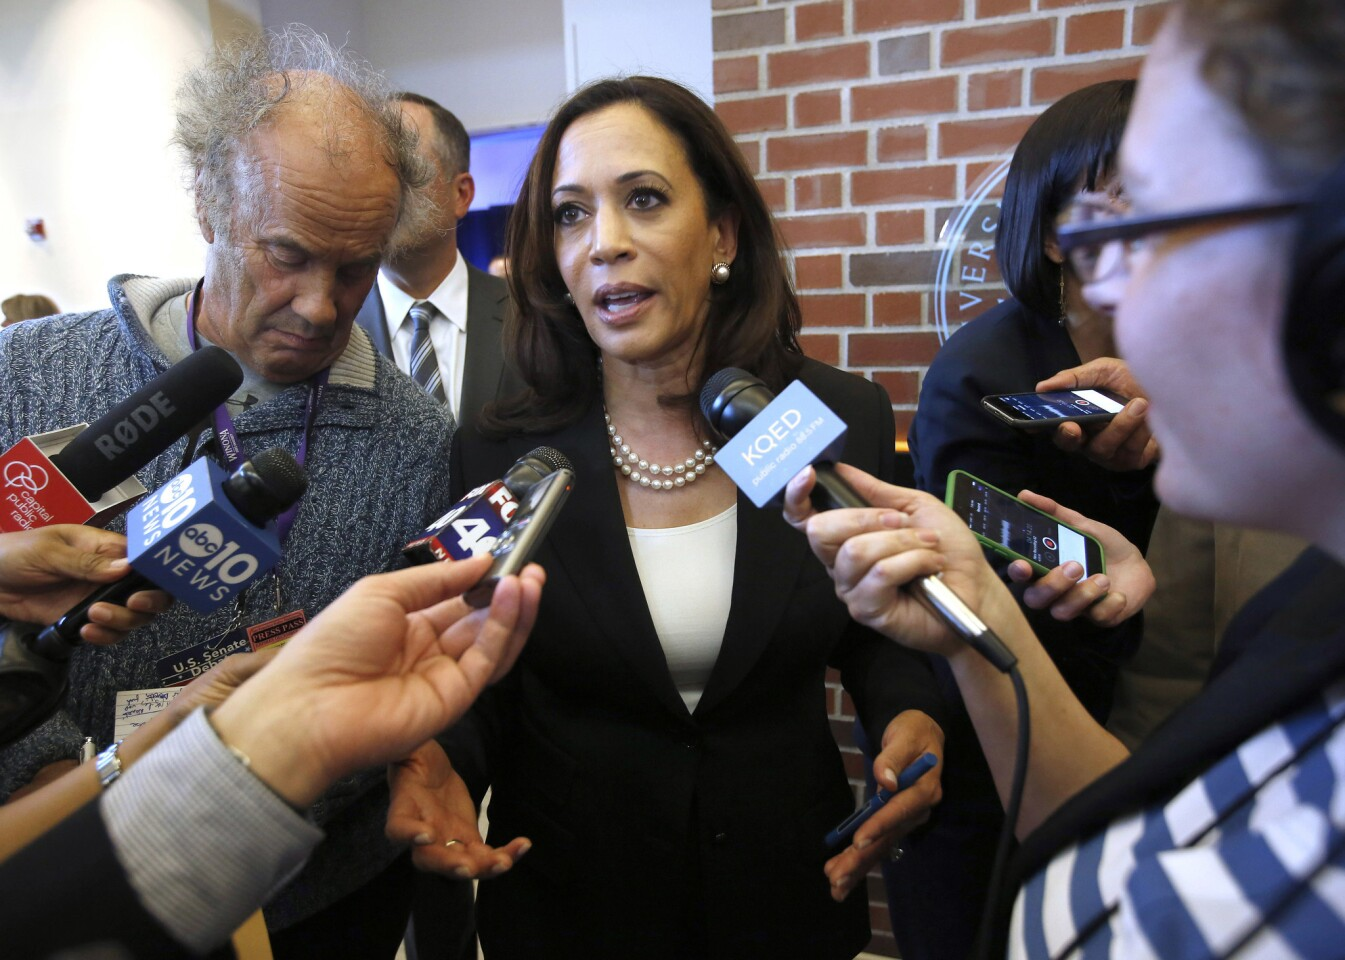 California Atty. Gen. Kamala Harris talks with reporters after a U.S. Senate debate at the University of the Pacific in Stockton on April 25.